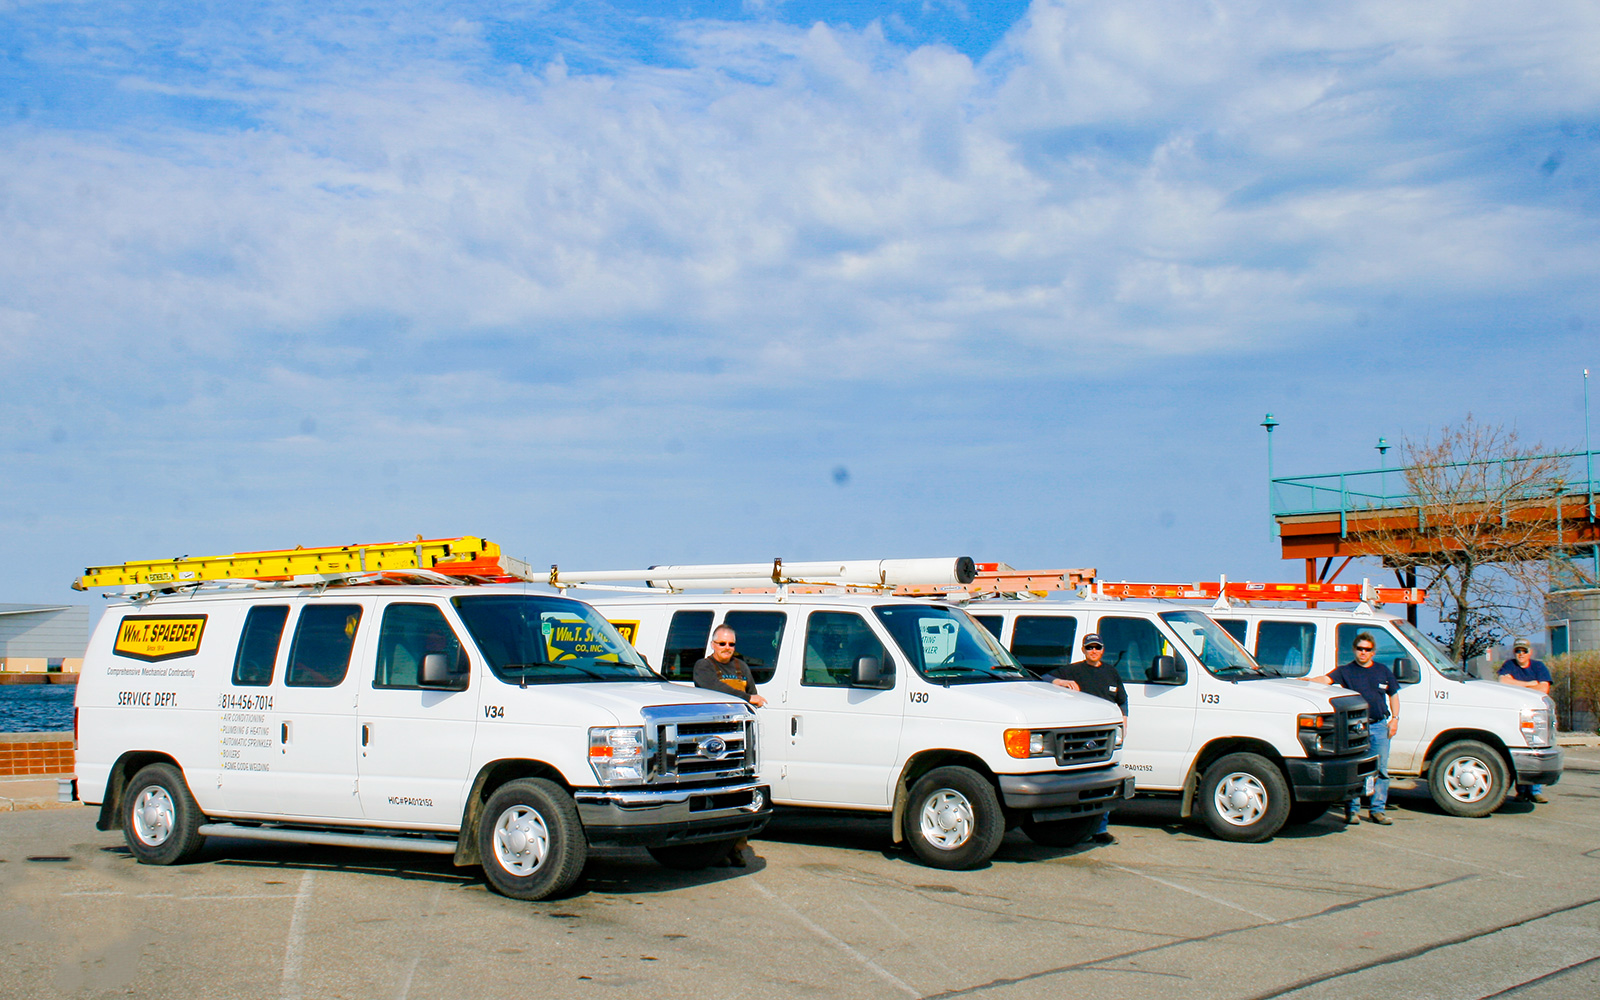 24-7 Service & Repair - The Vans are lined up!